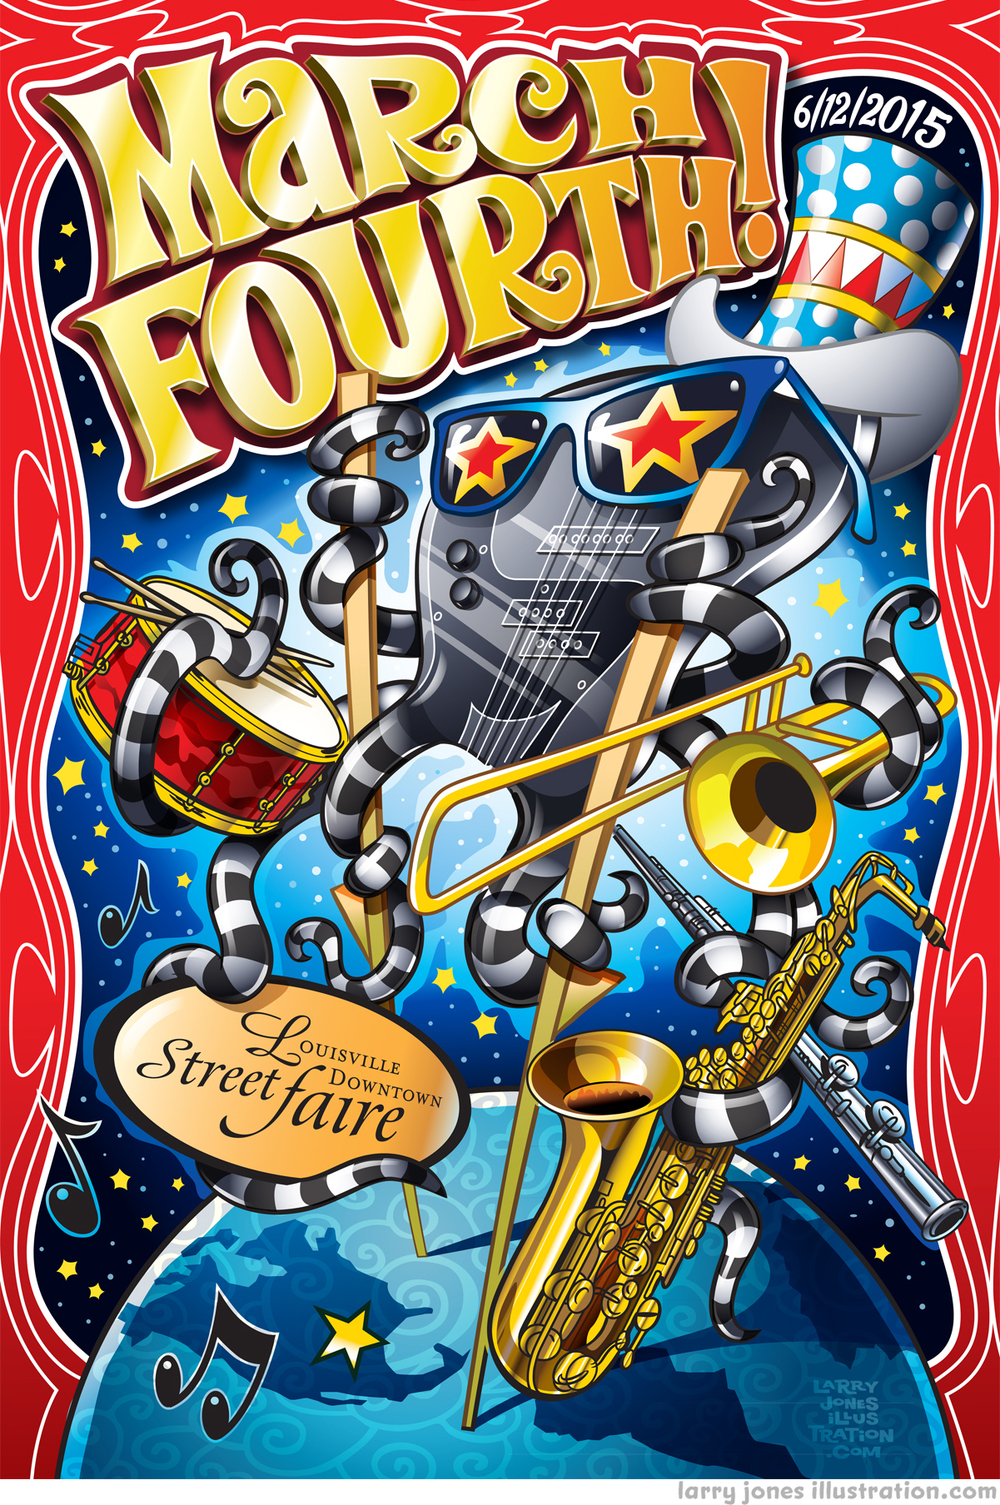 MarchFourth!_poster_illustration.jpg